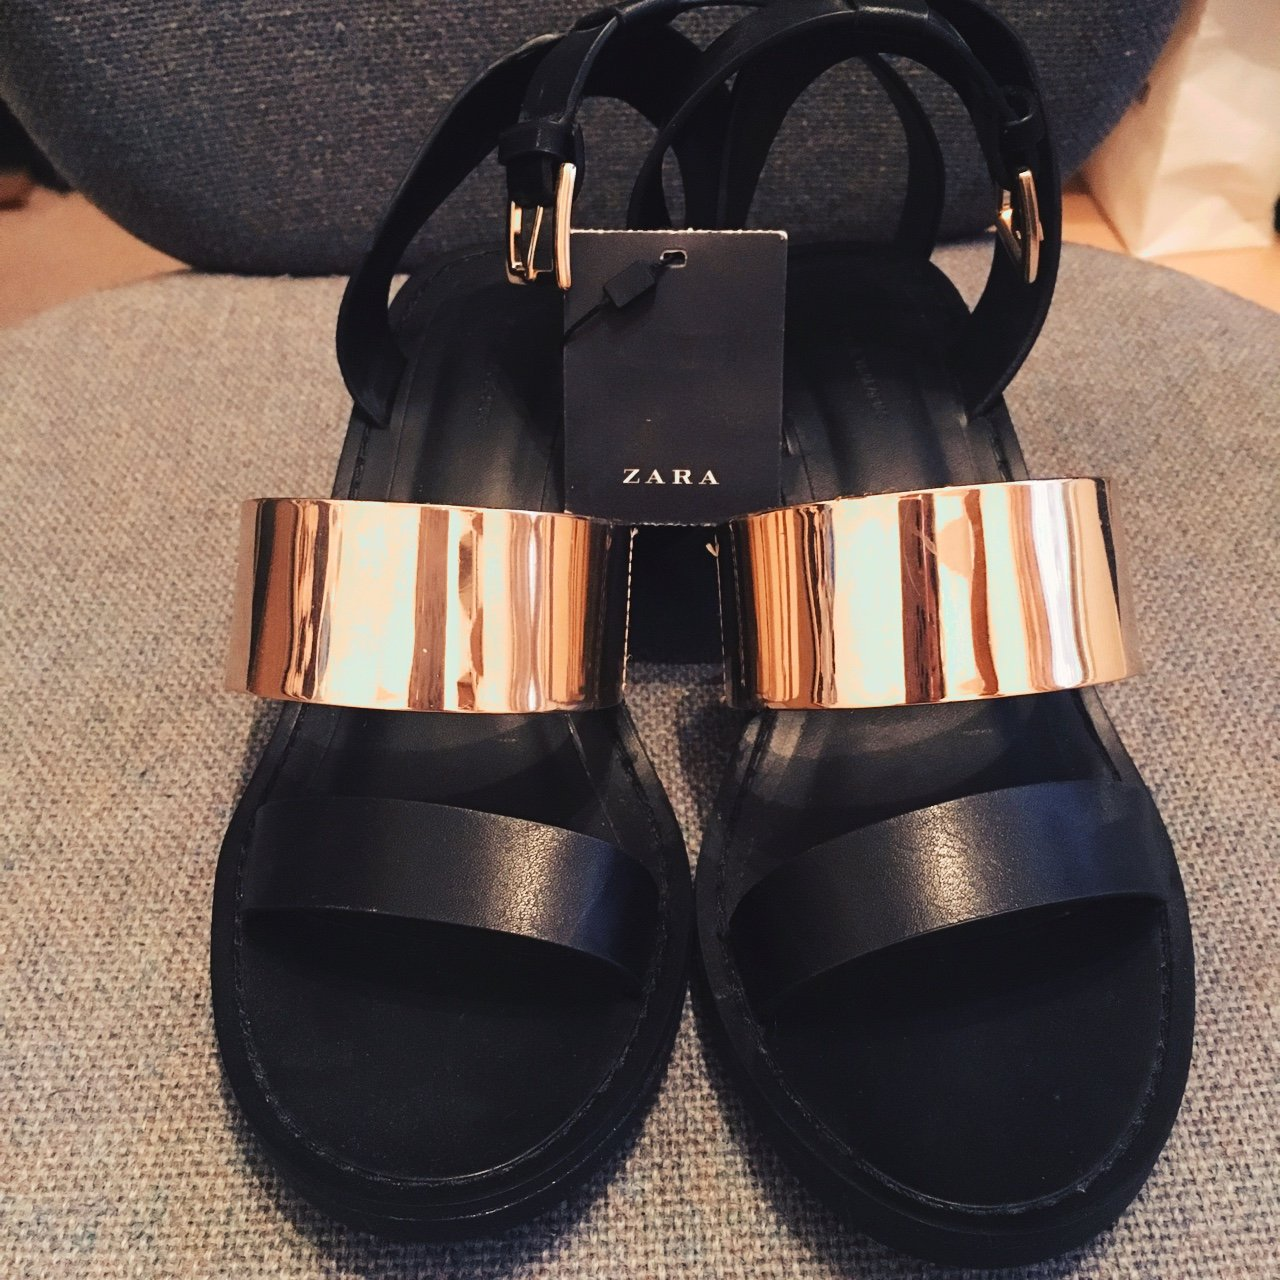 e964efb03 Zara heeled sandals with ankle straps. Black and gold. Brand - Depop